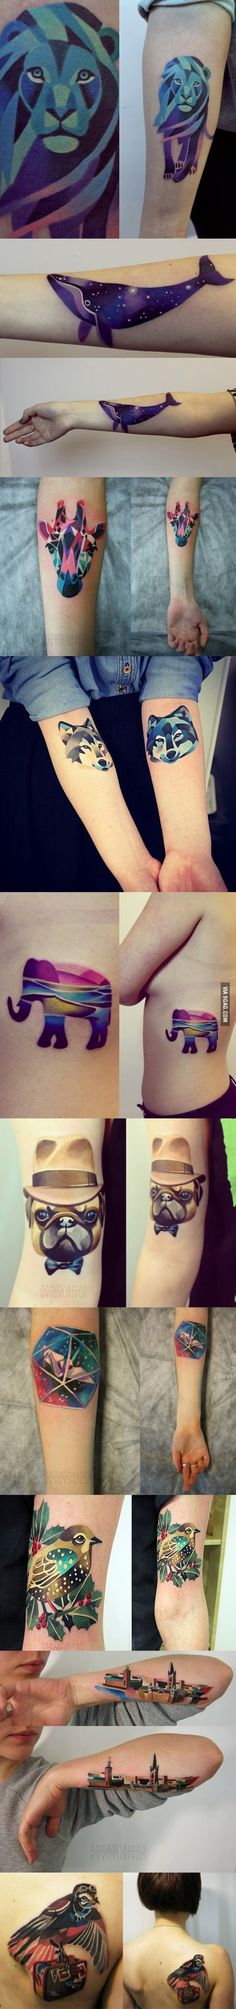 Pretty f'kin cool tattoos - http://geekstumbles.com/funny/pretty-fkin-cool-tattoos/